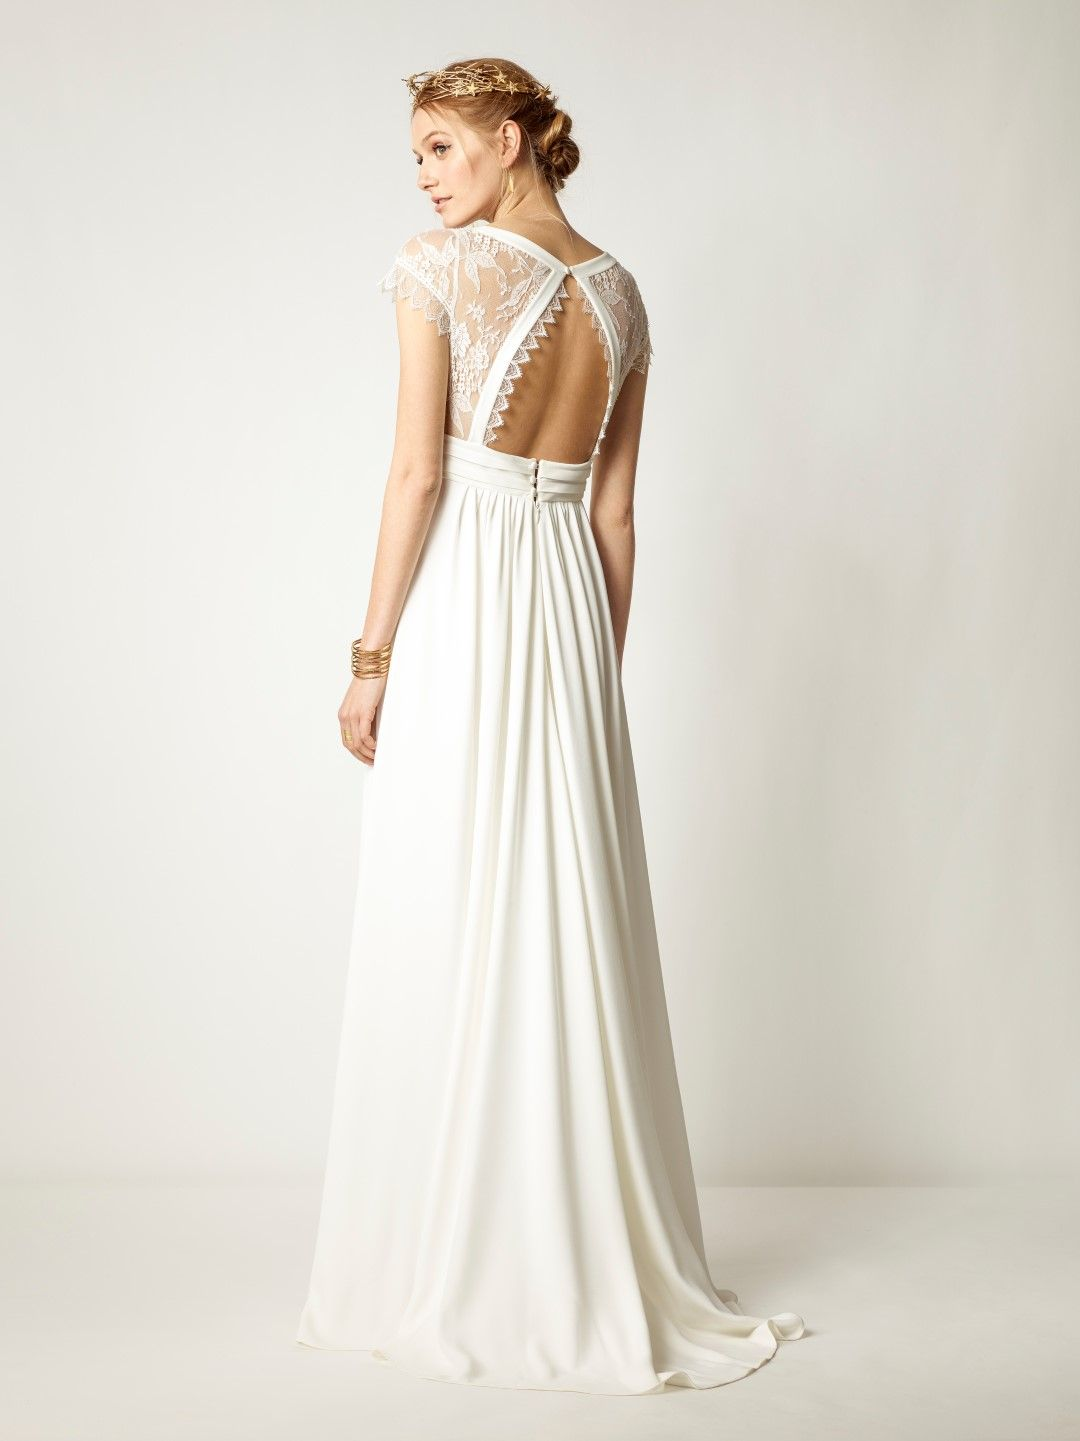 Previously owned wedding dresses  Pin by dahlracas on Wedding Plans  Pinterest  Wedding dress and